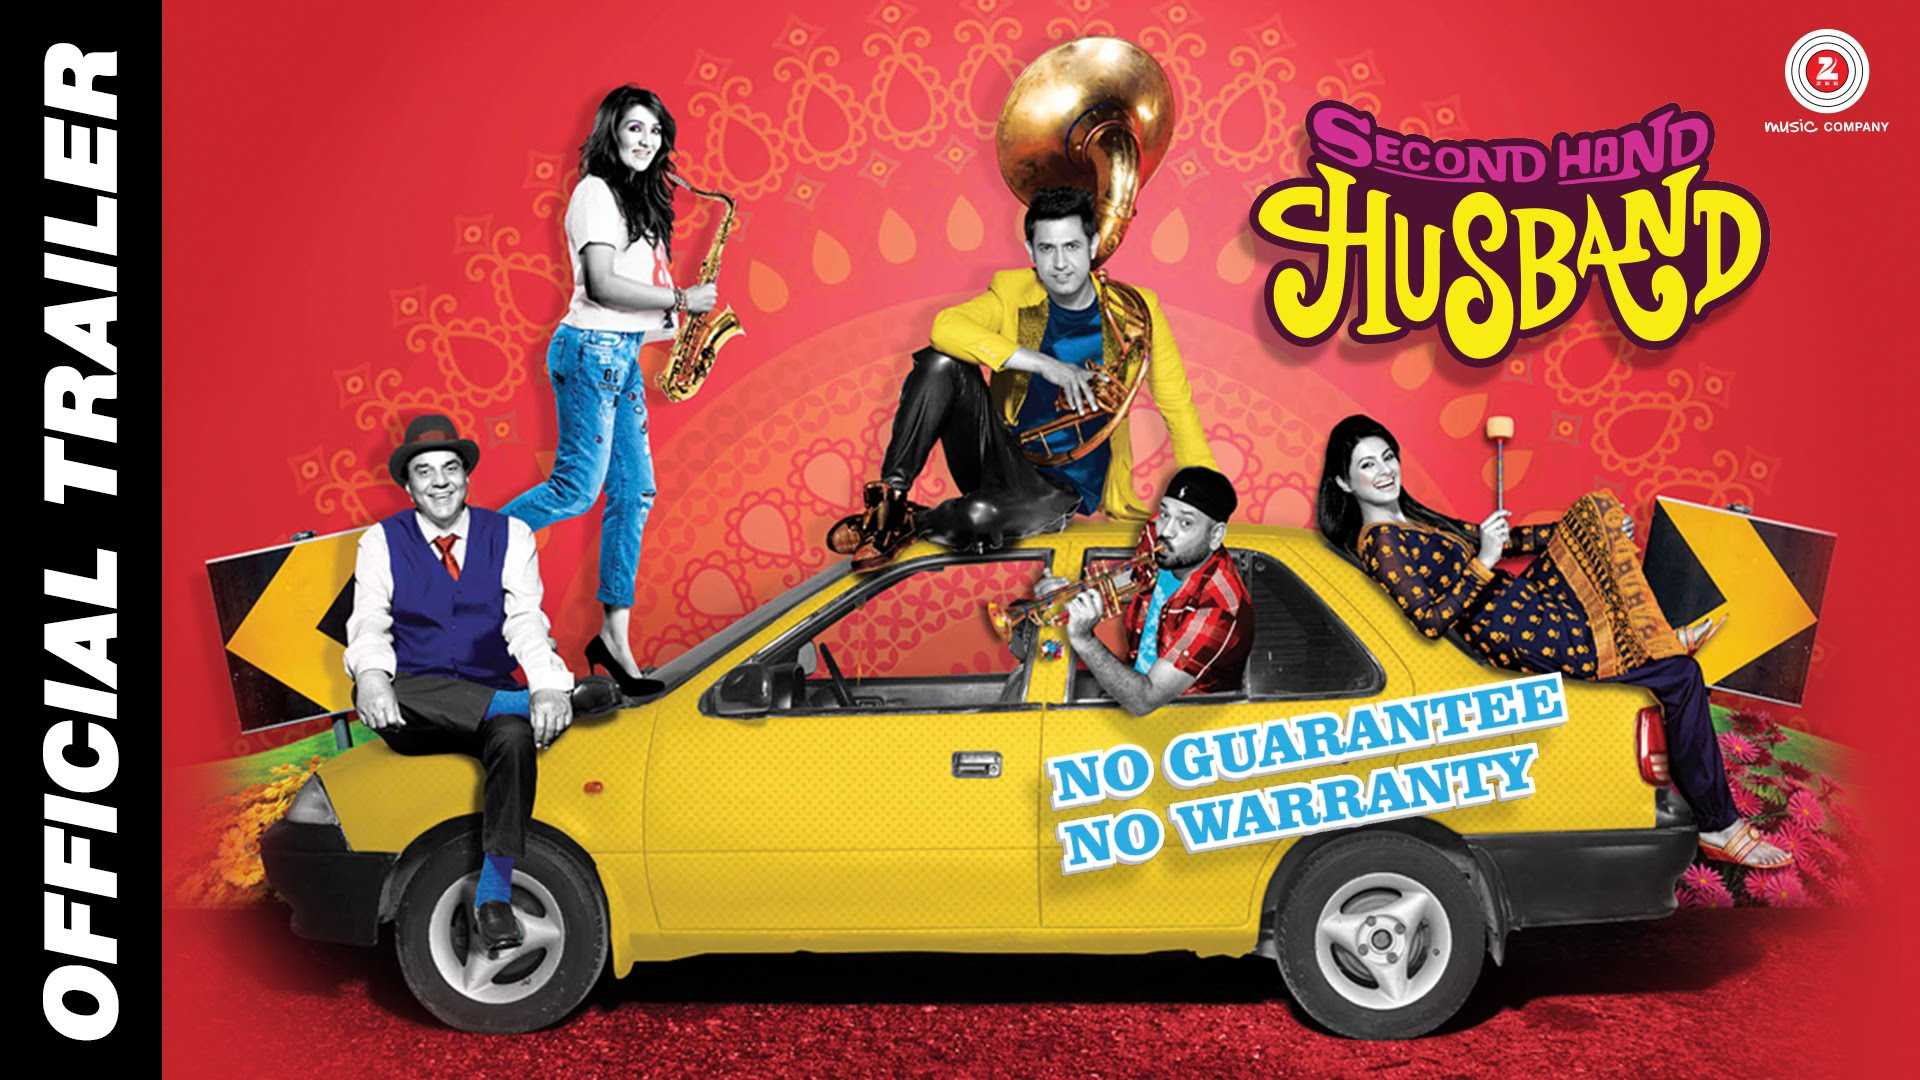 Second Hand Husband Trailer | Official Theatrical Trailer